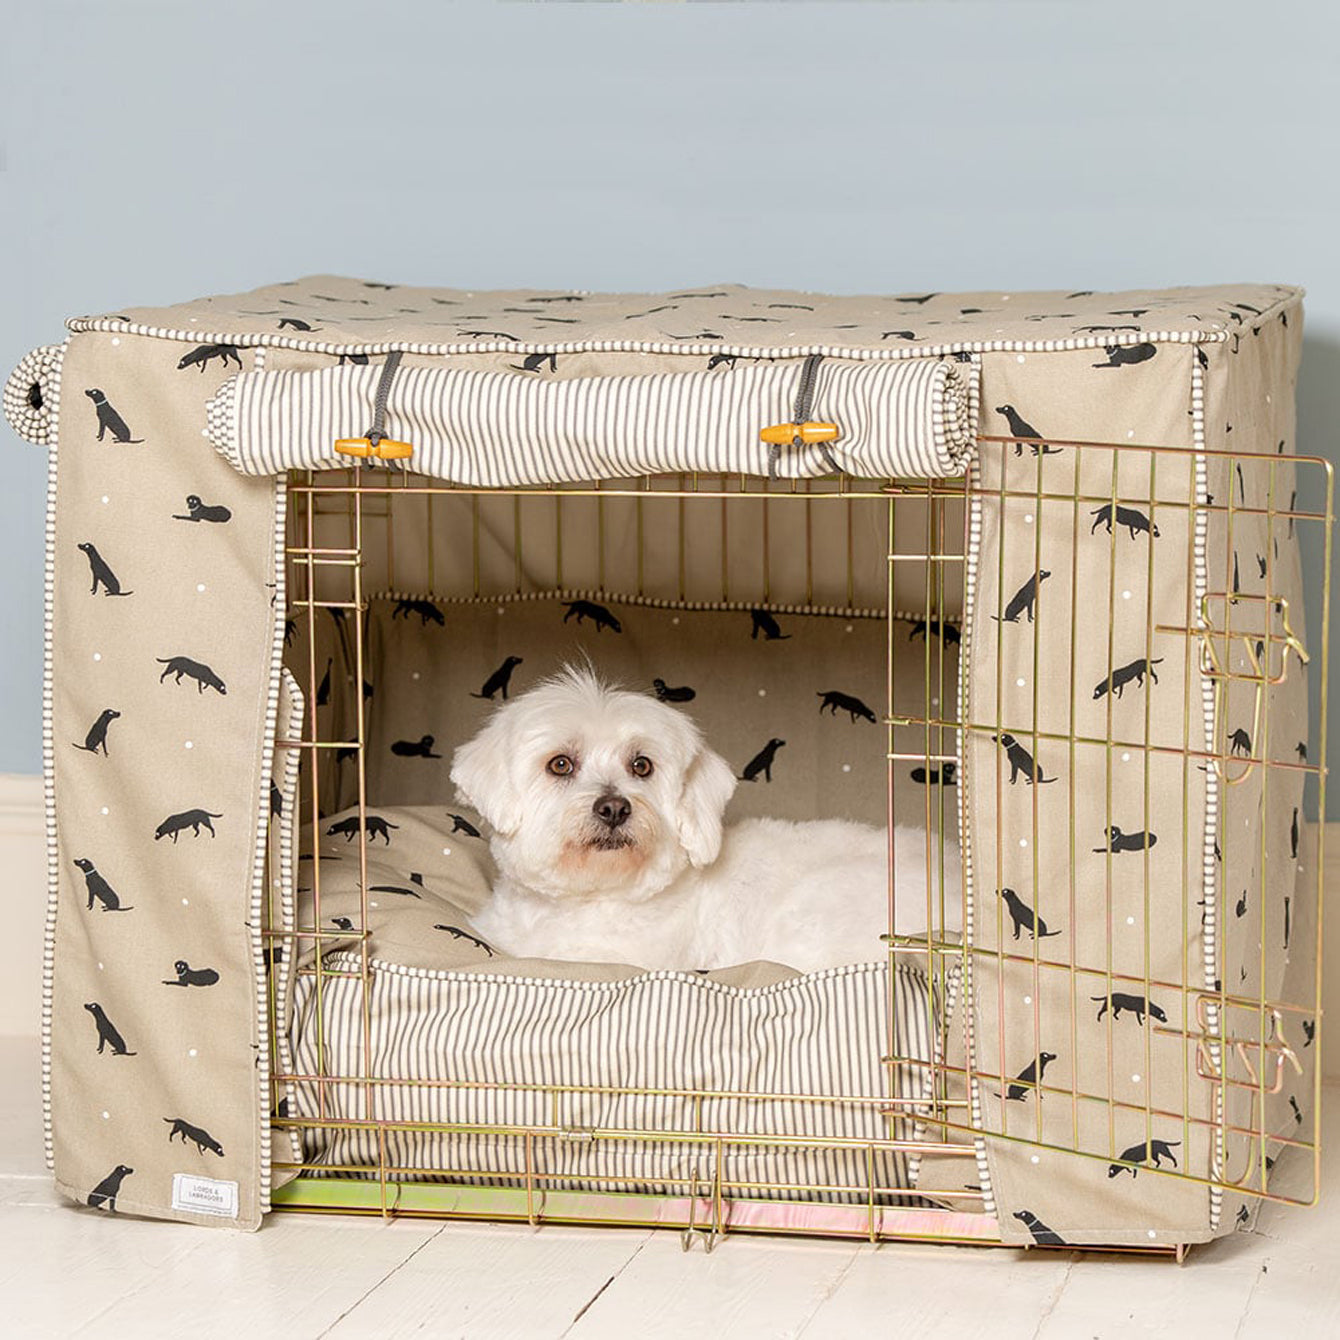 dog crate set with bedding from Lords & Labradors